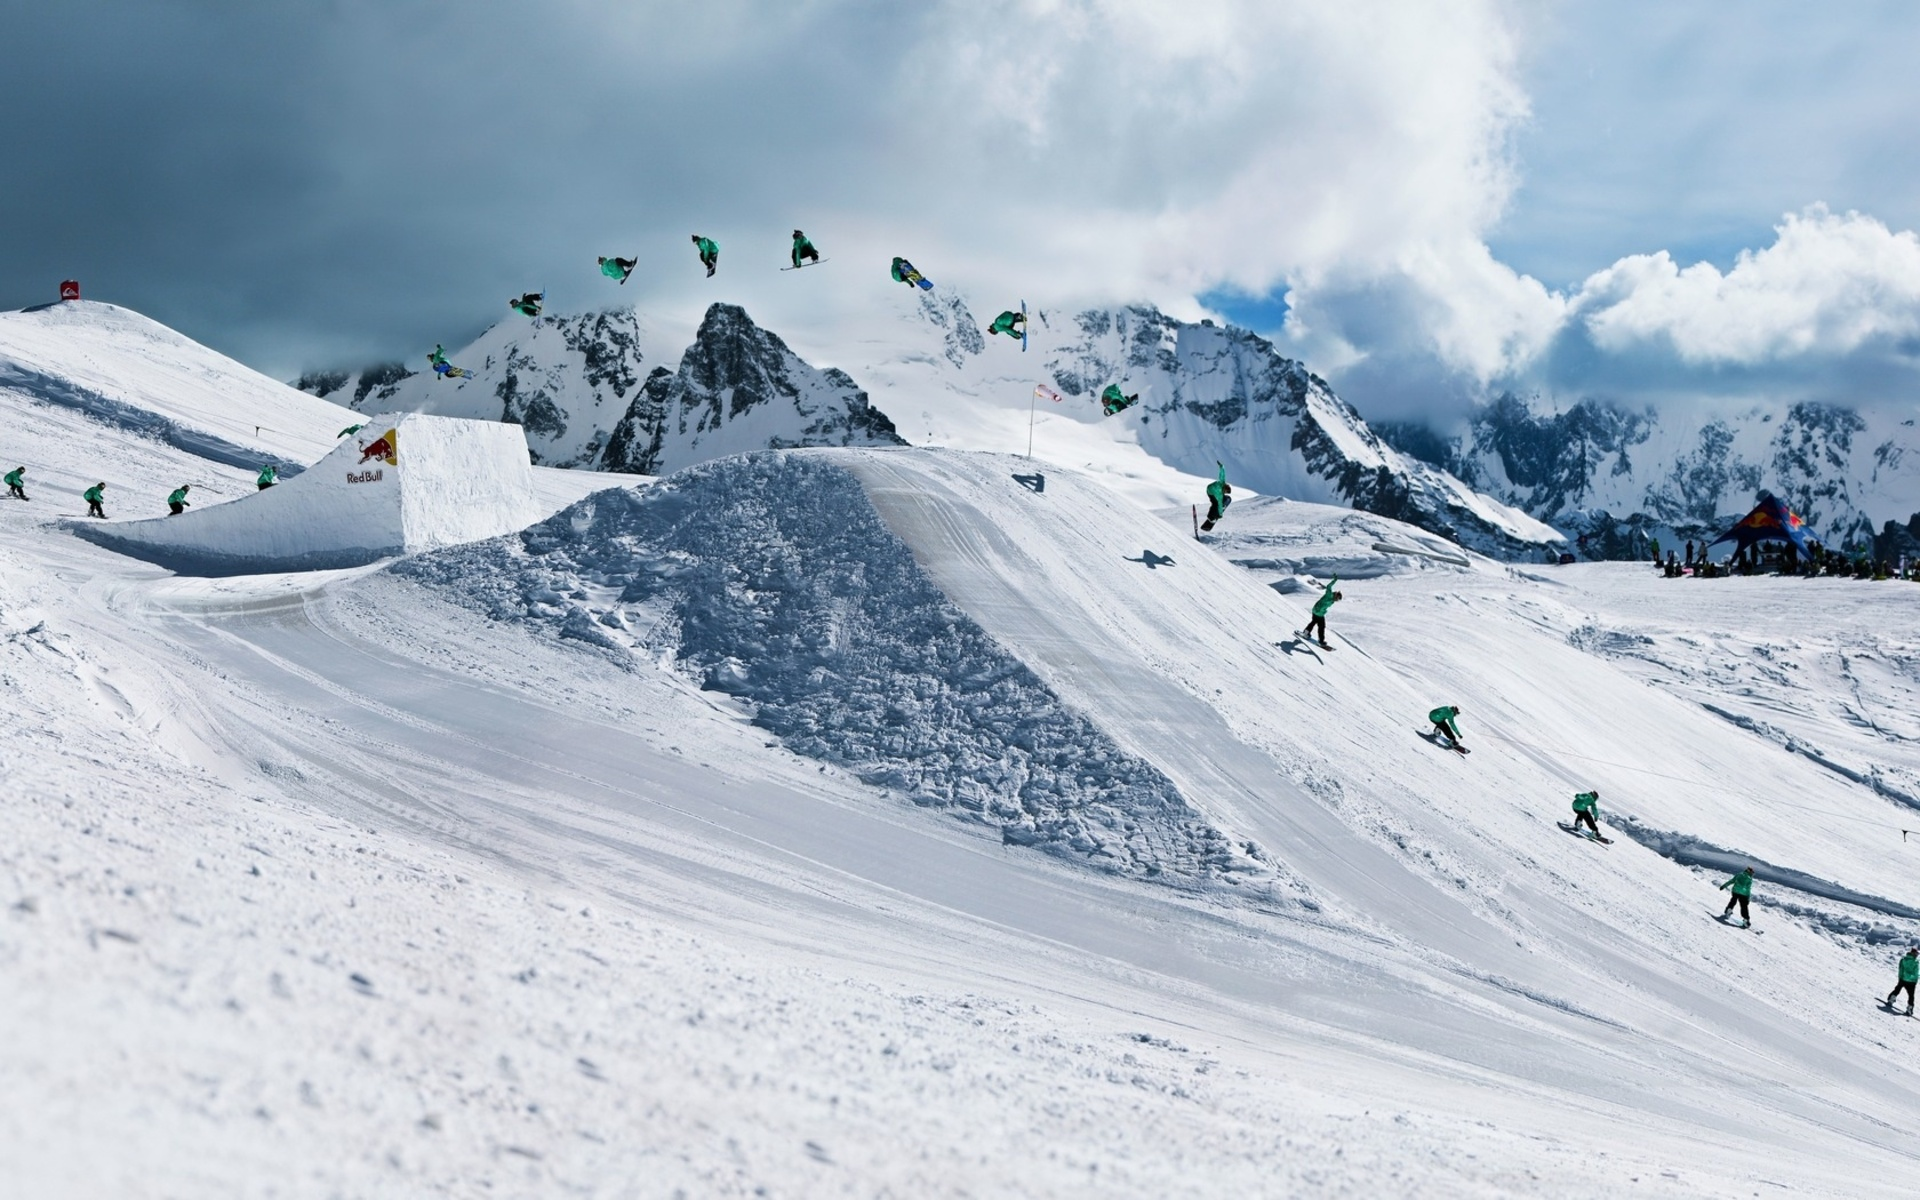 snowboarding wallpapers wallpaper - photo #36